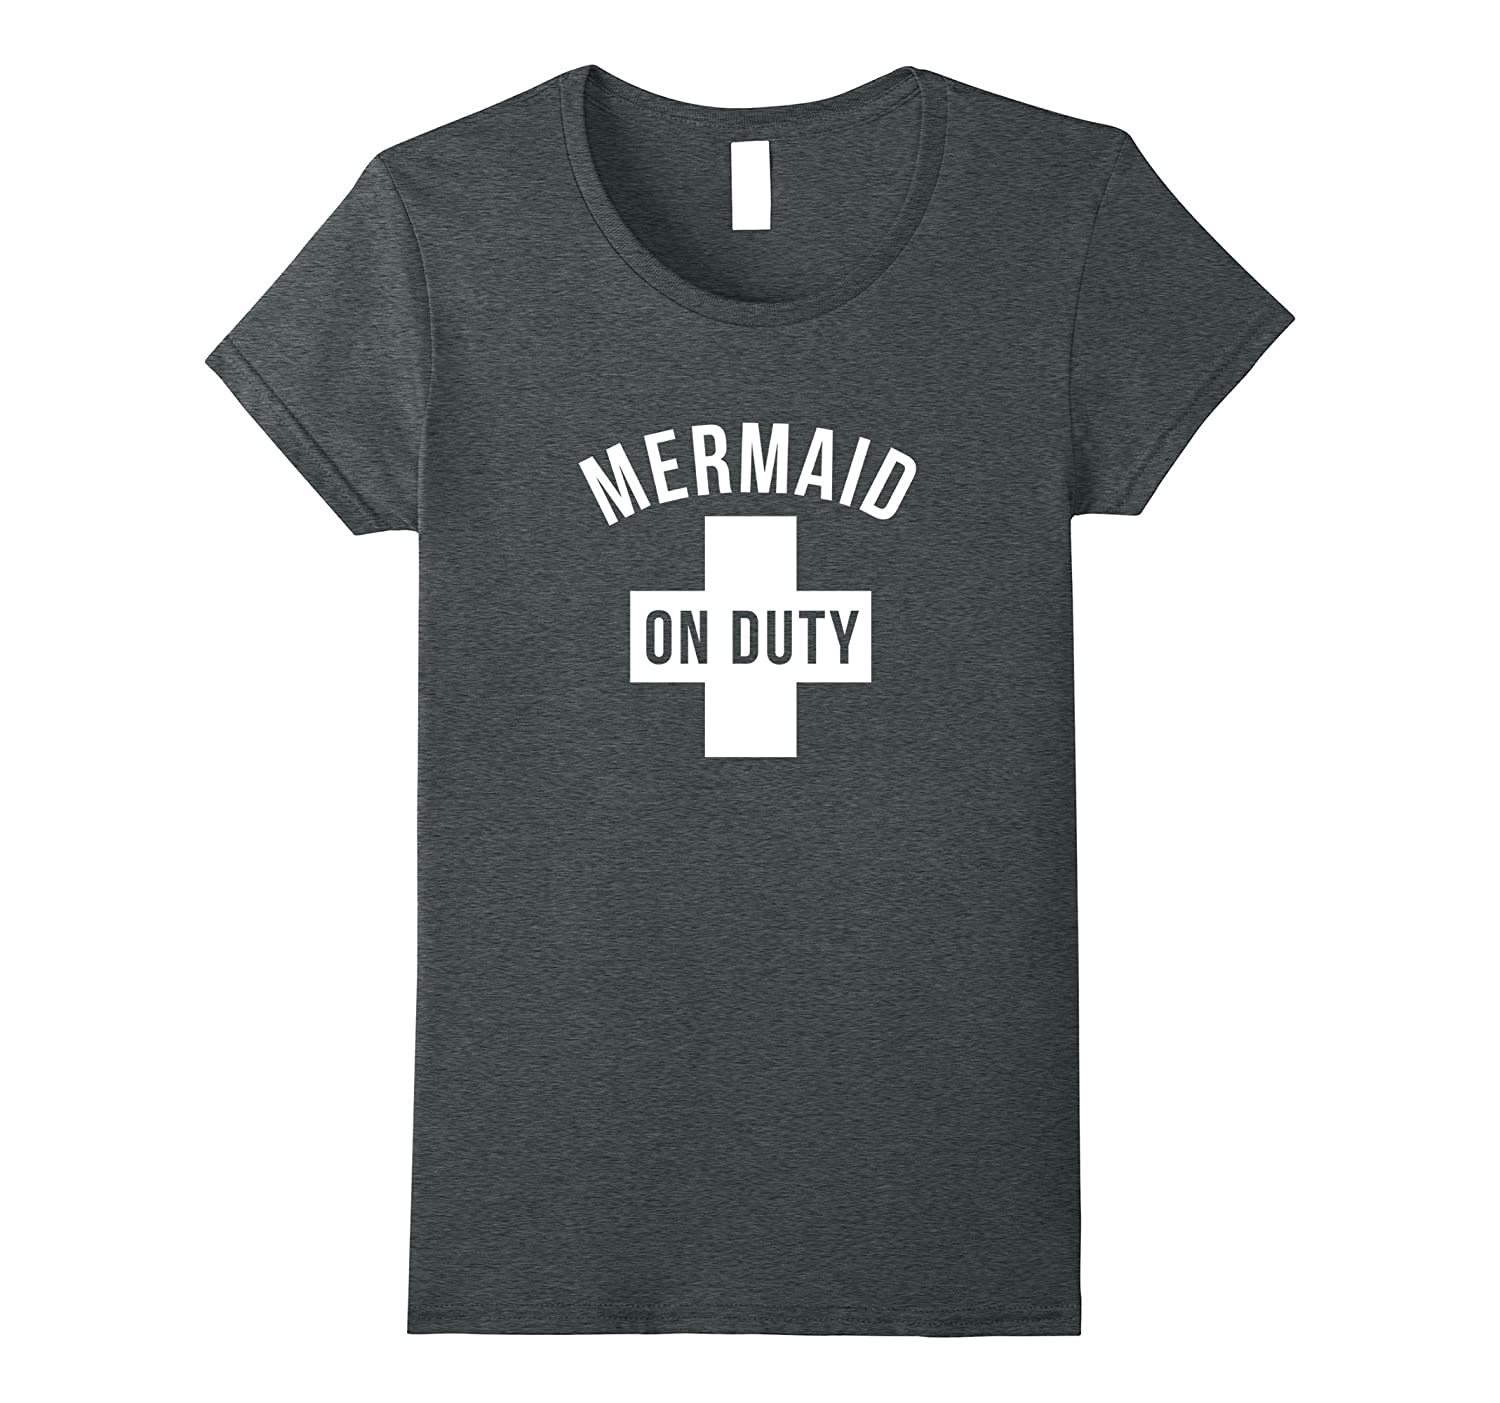 Lifeguard Mermaid On Duty funny shirt for summer swimming